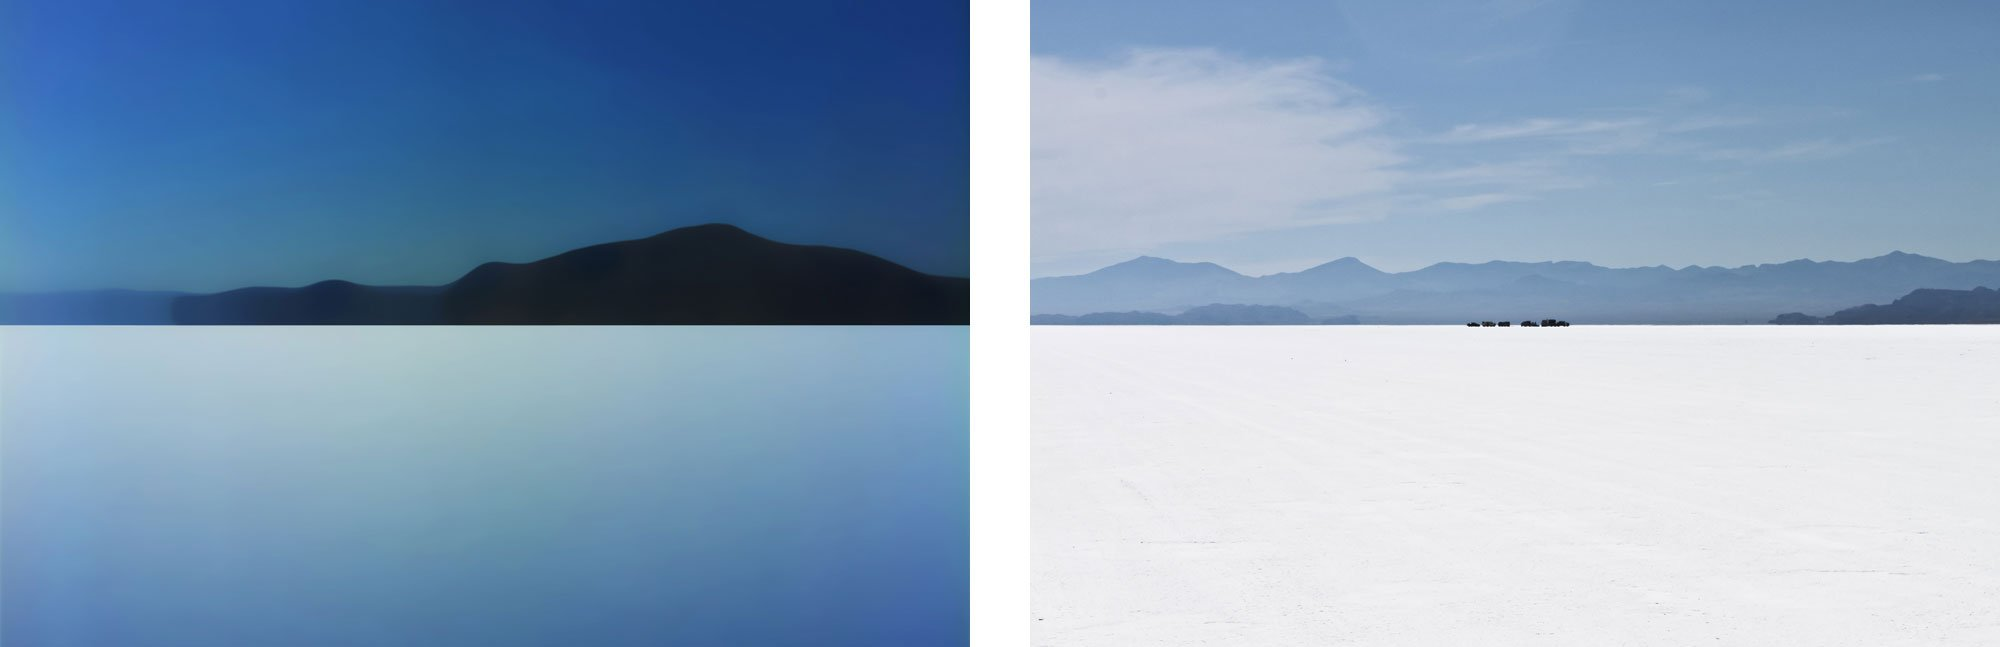 Fata Morgana (Bonneville Salt Flats, August 17th, 2011)